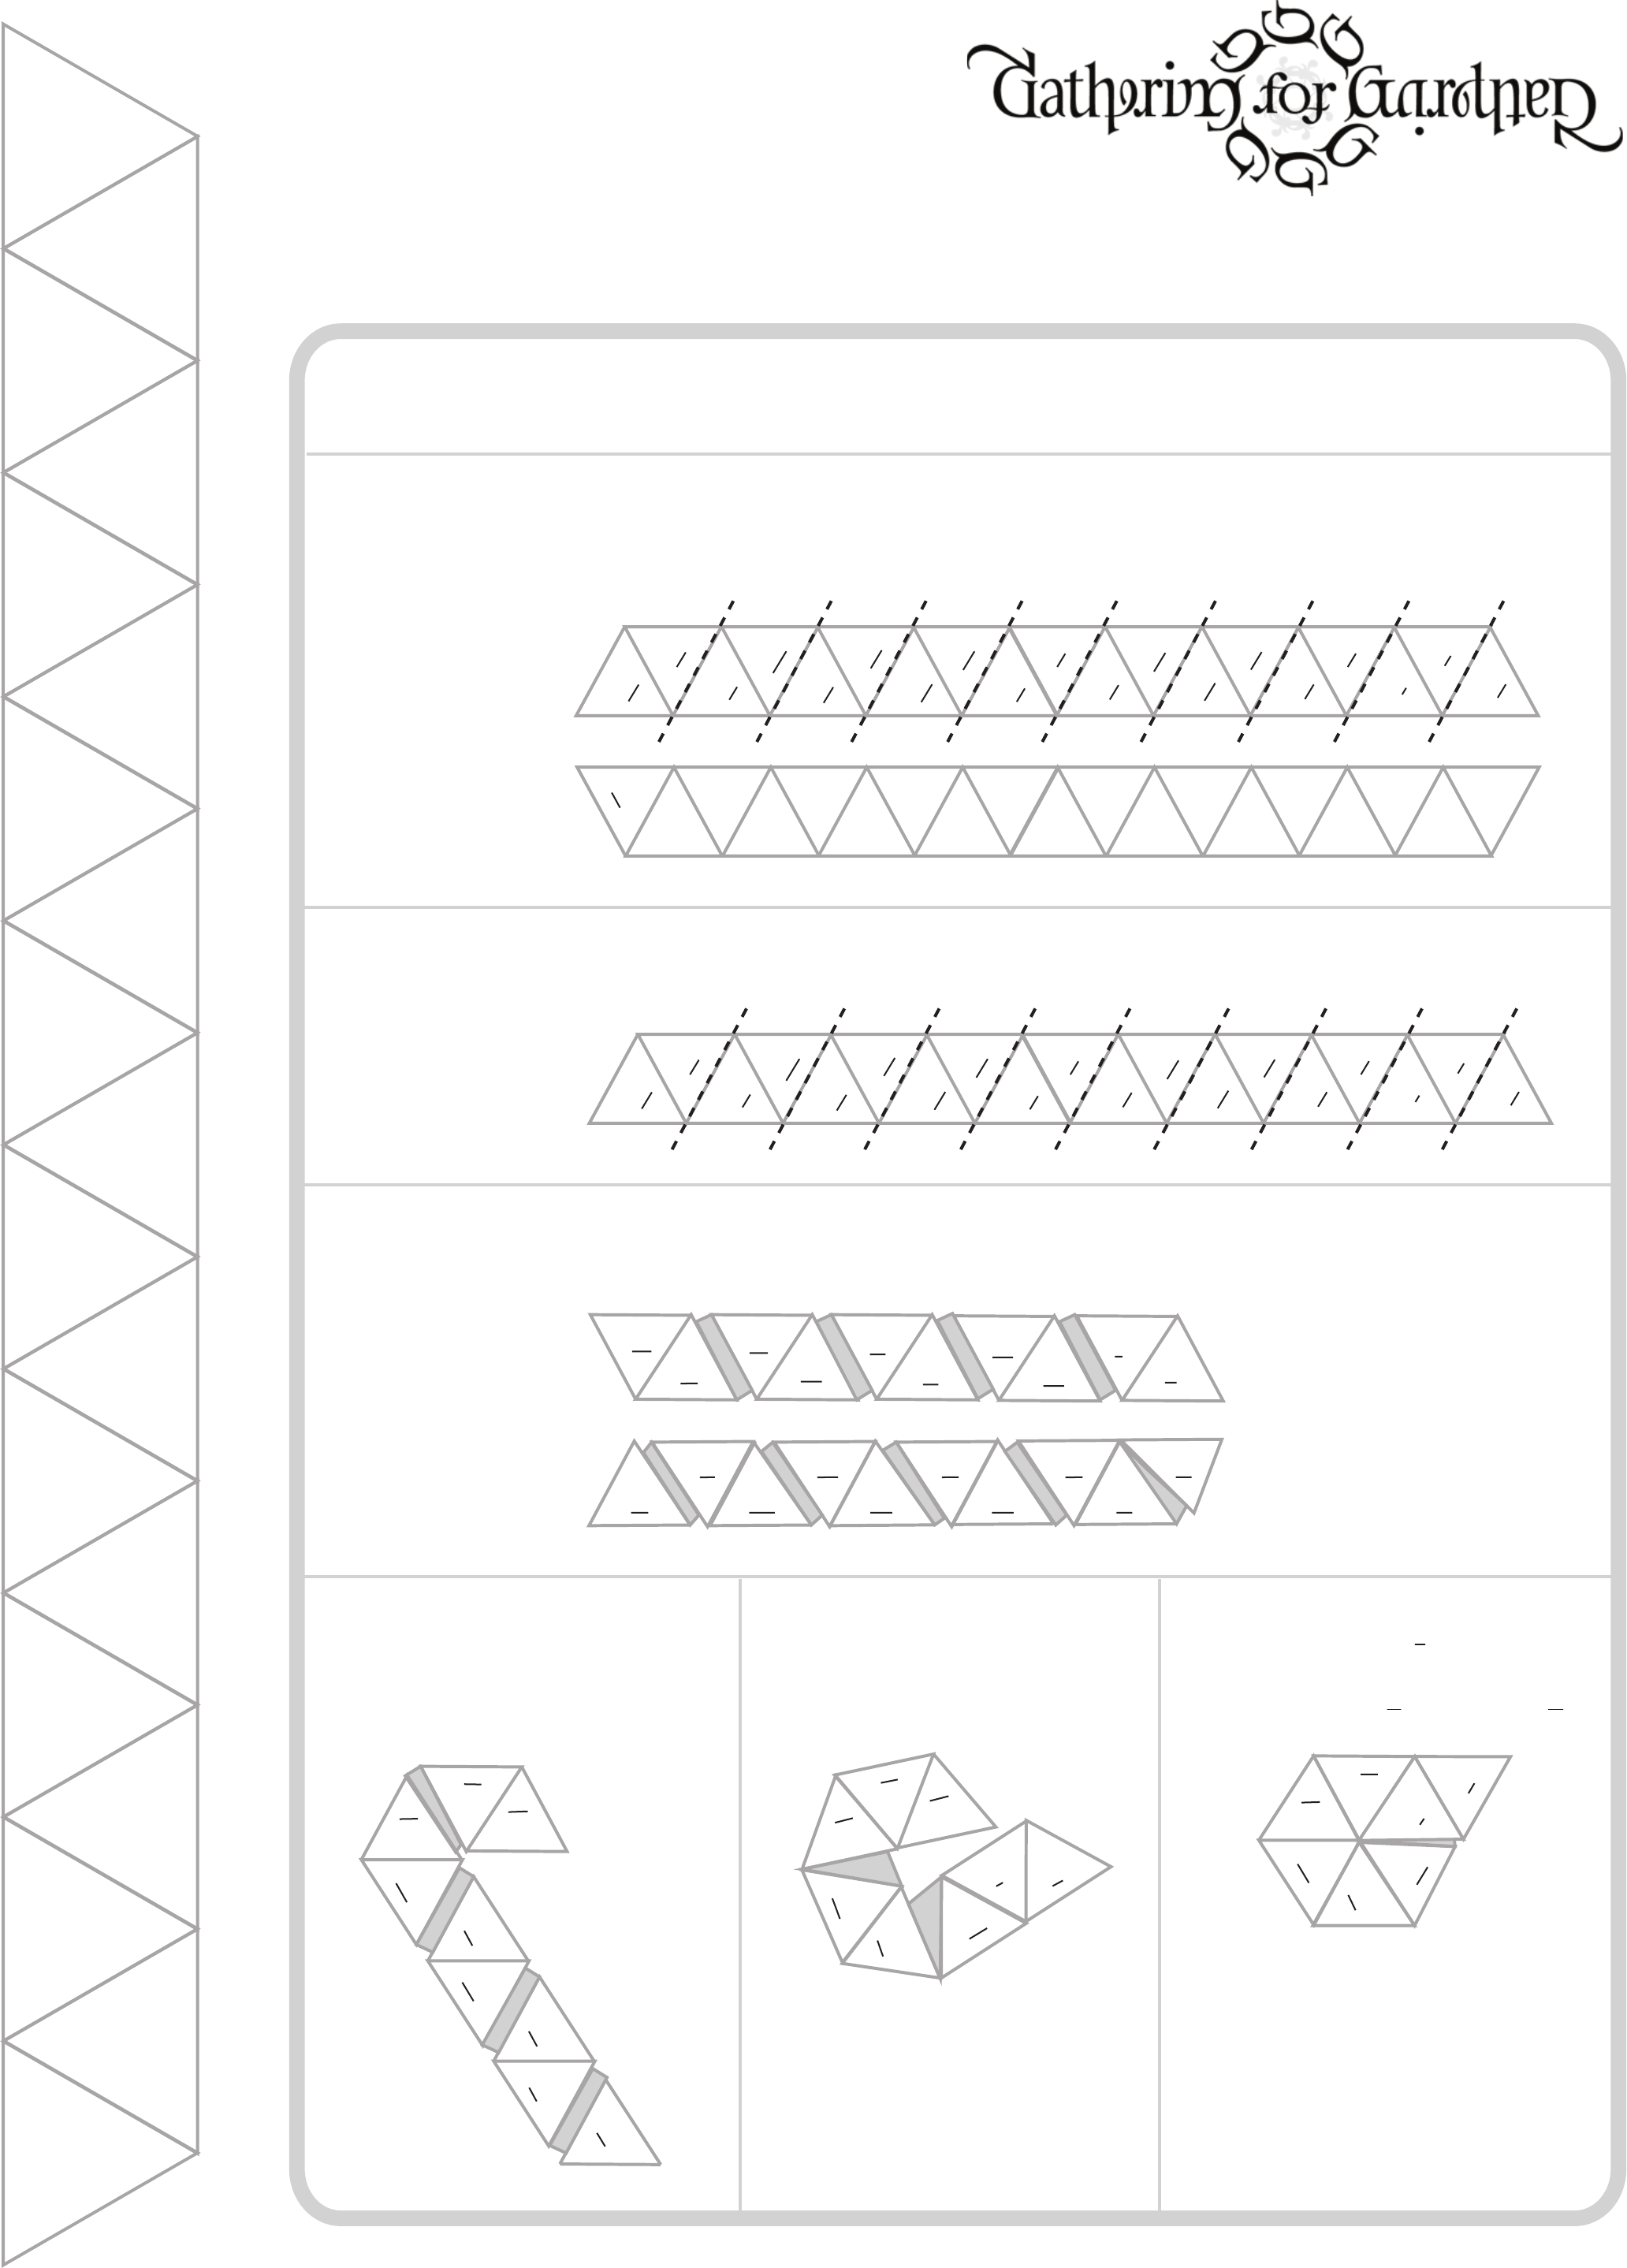 Hexahexaflexagon blank template free download for Hexahexaflexagon template